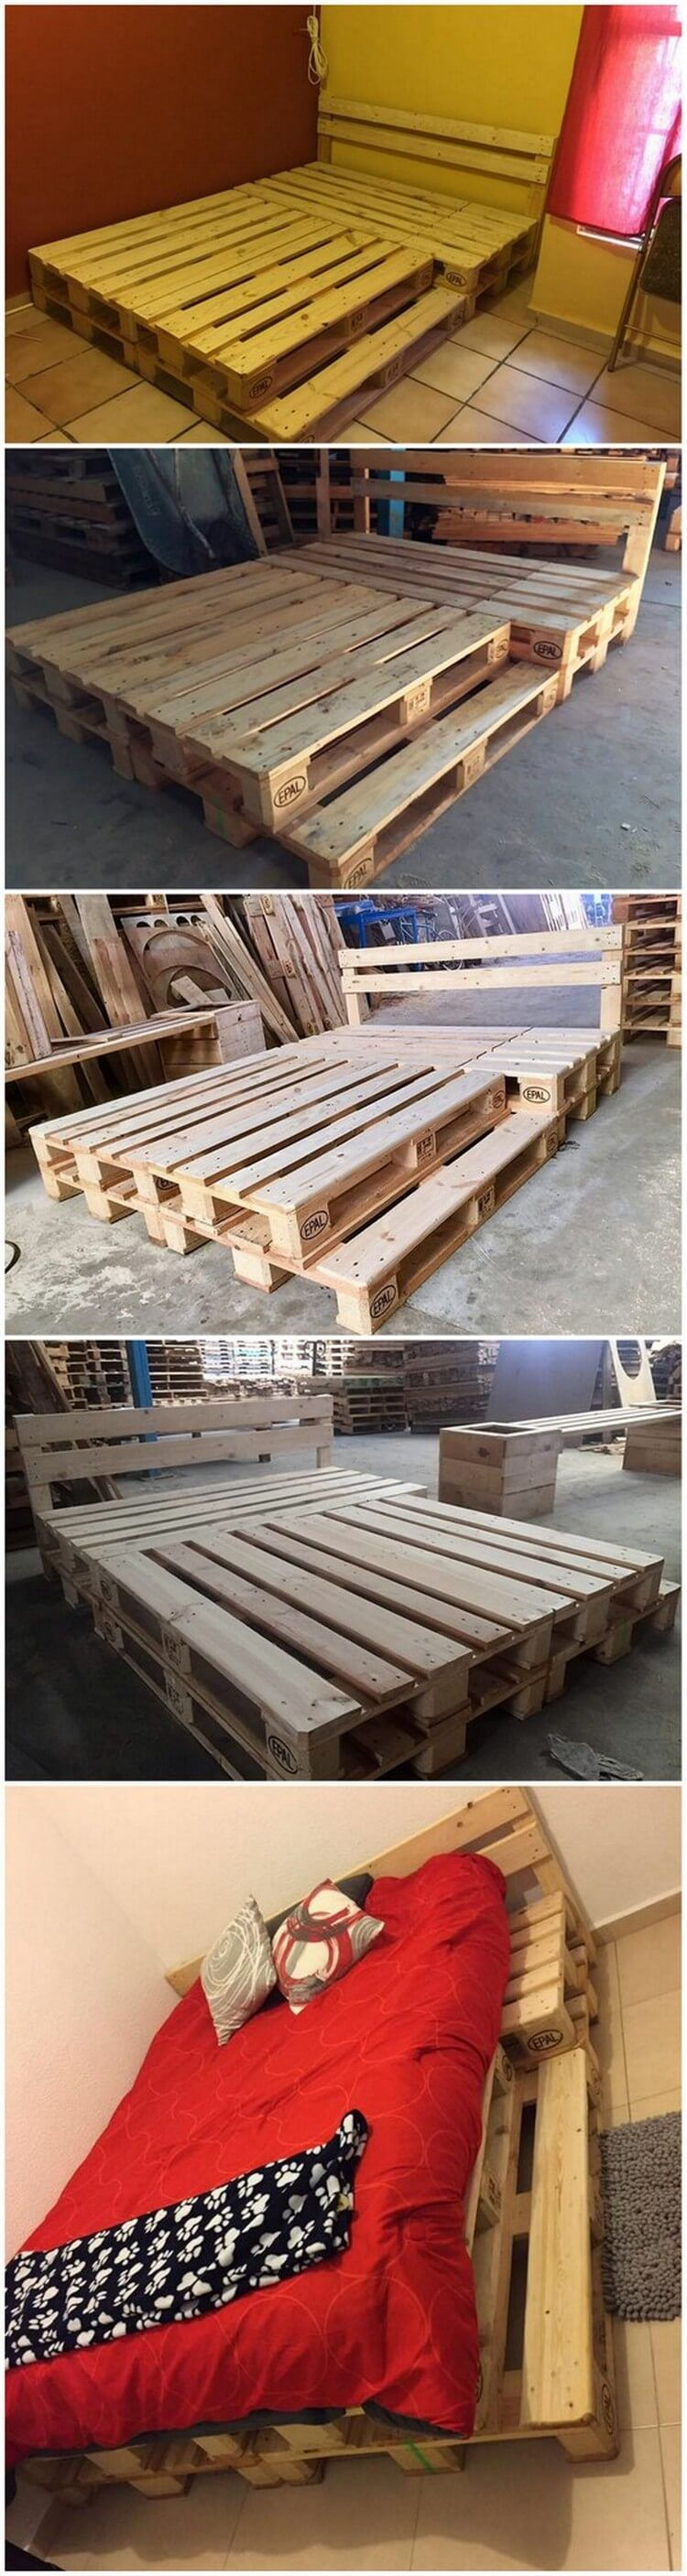 DIY Recycled Wood Pallet Bed Plan | Wood pallet beds ...